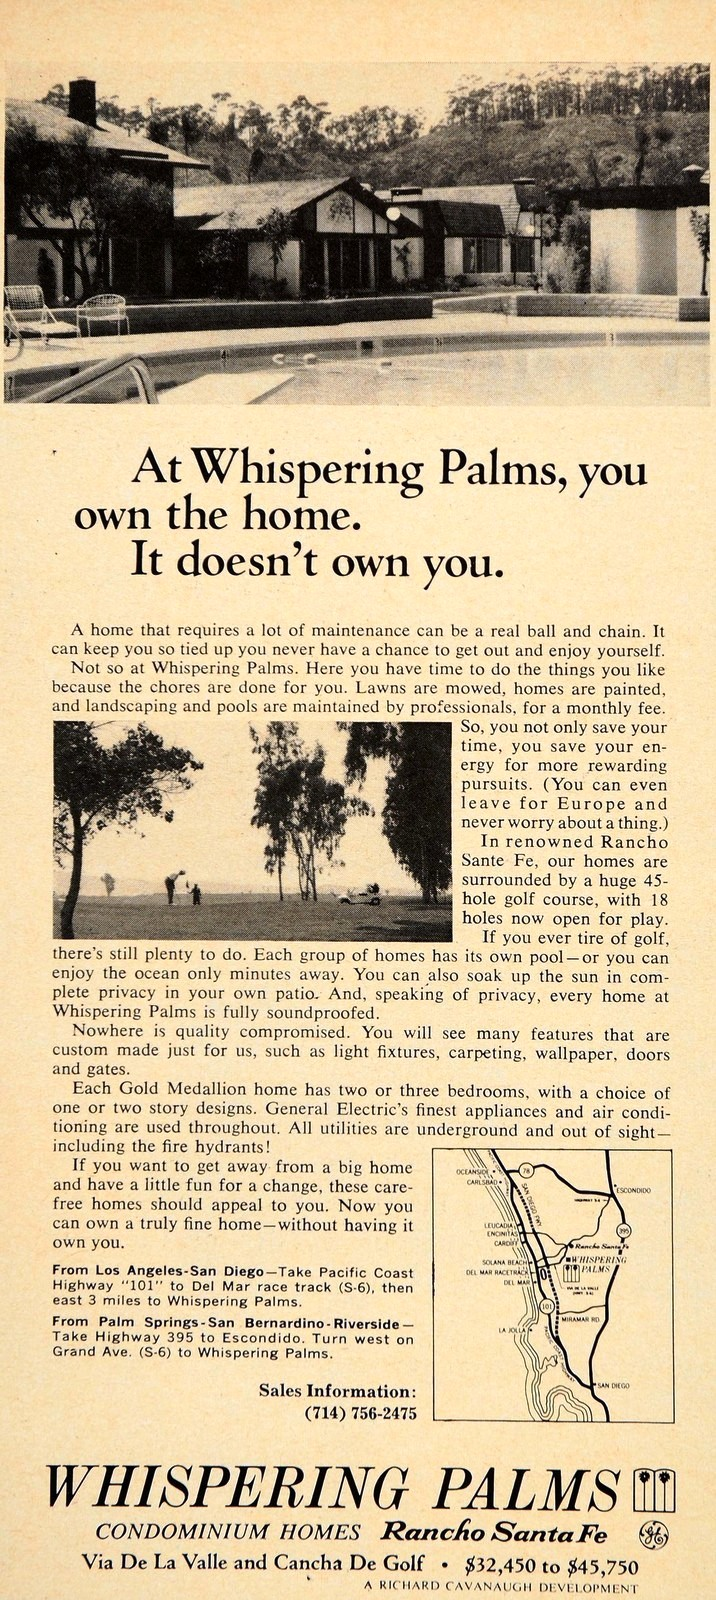 Original advertisement for Whispering Palms.